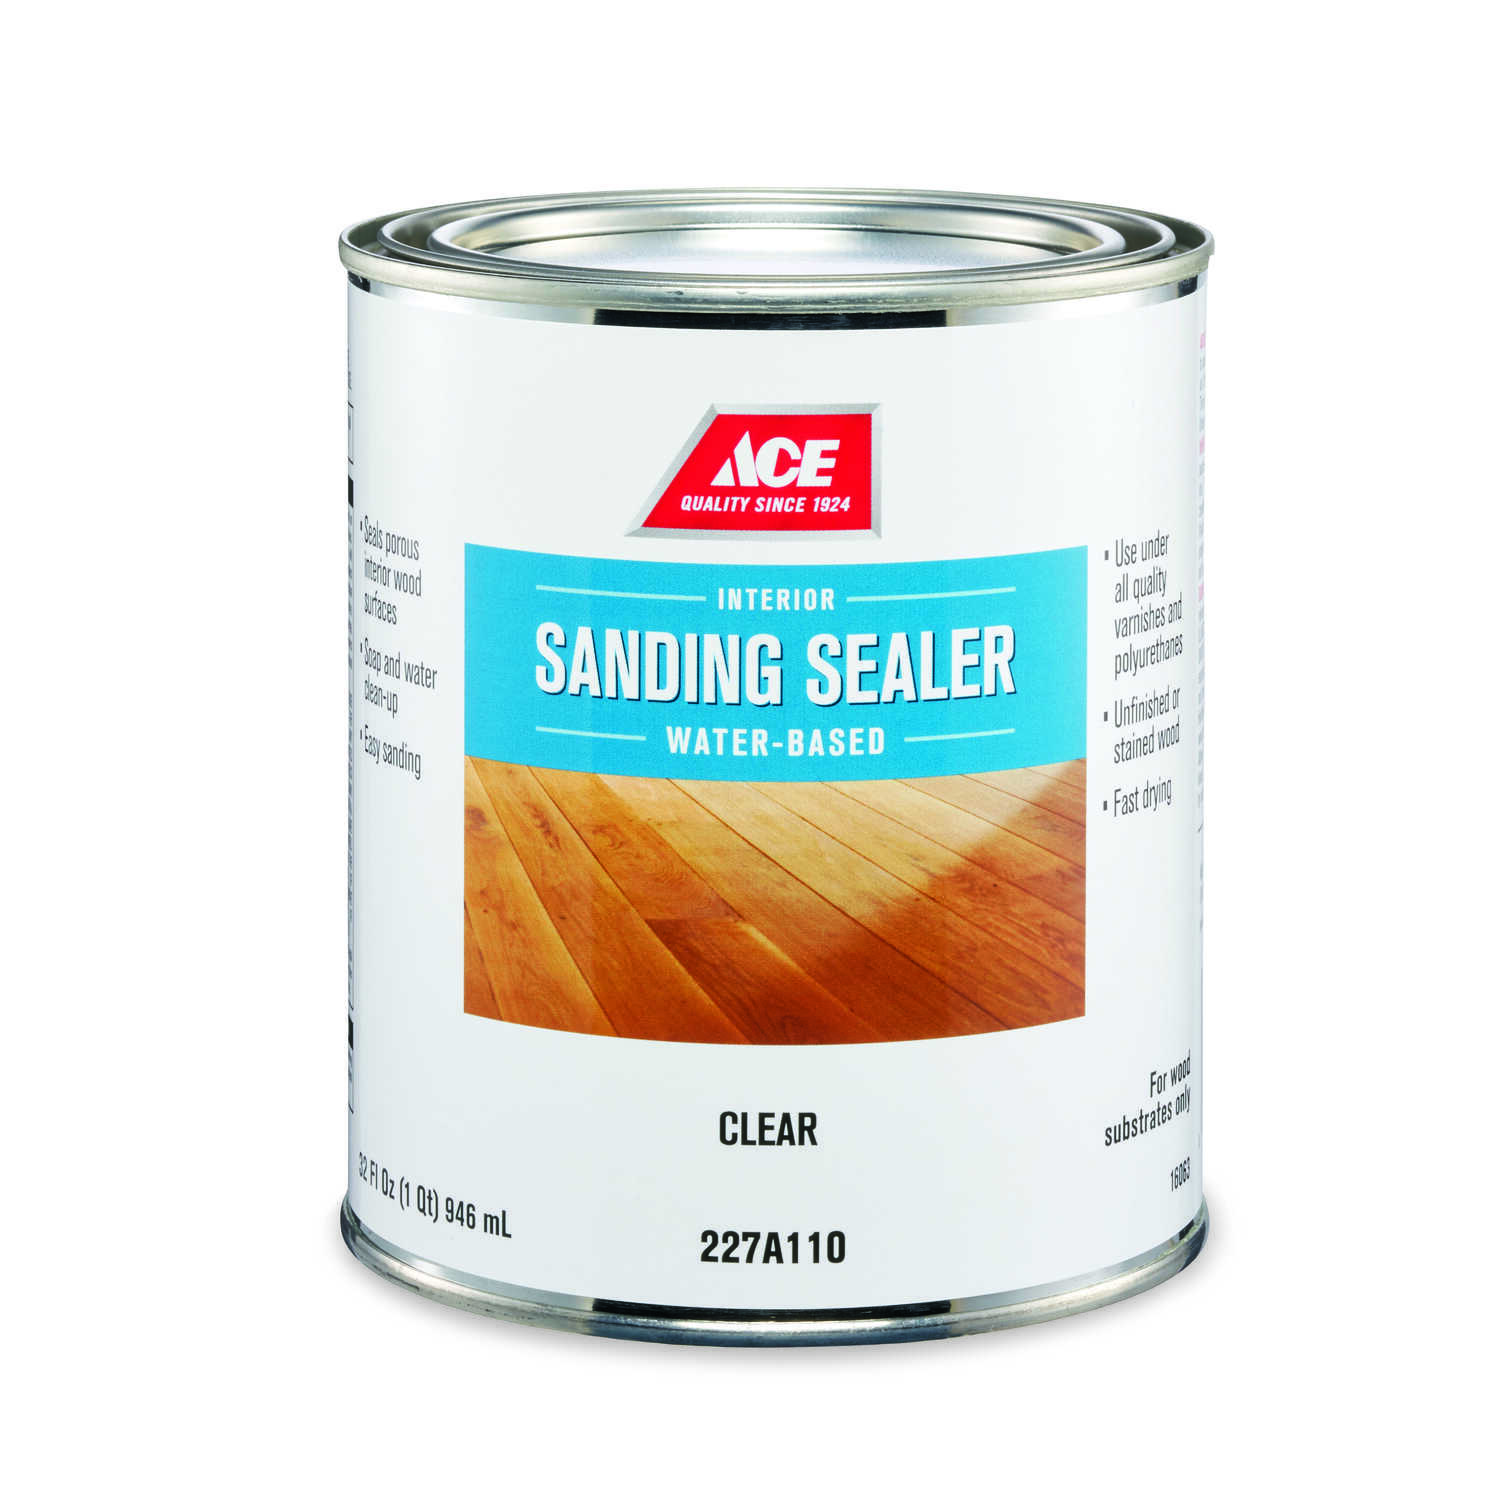 Ace  Smooth  Clear  Water-Based  Sanding Sealer  1 qt.